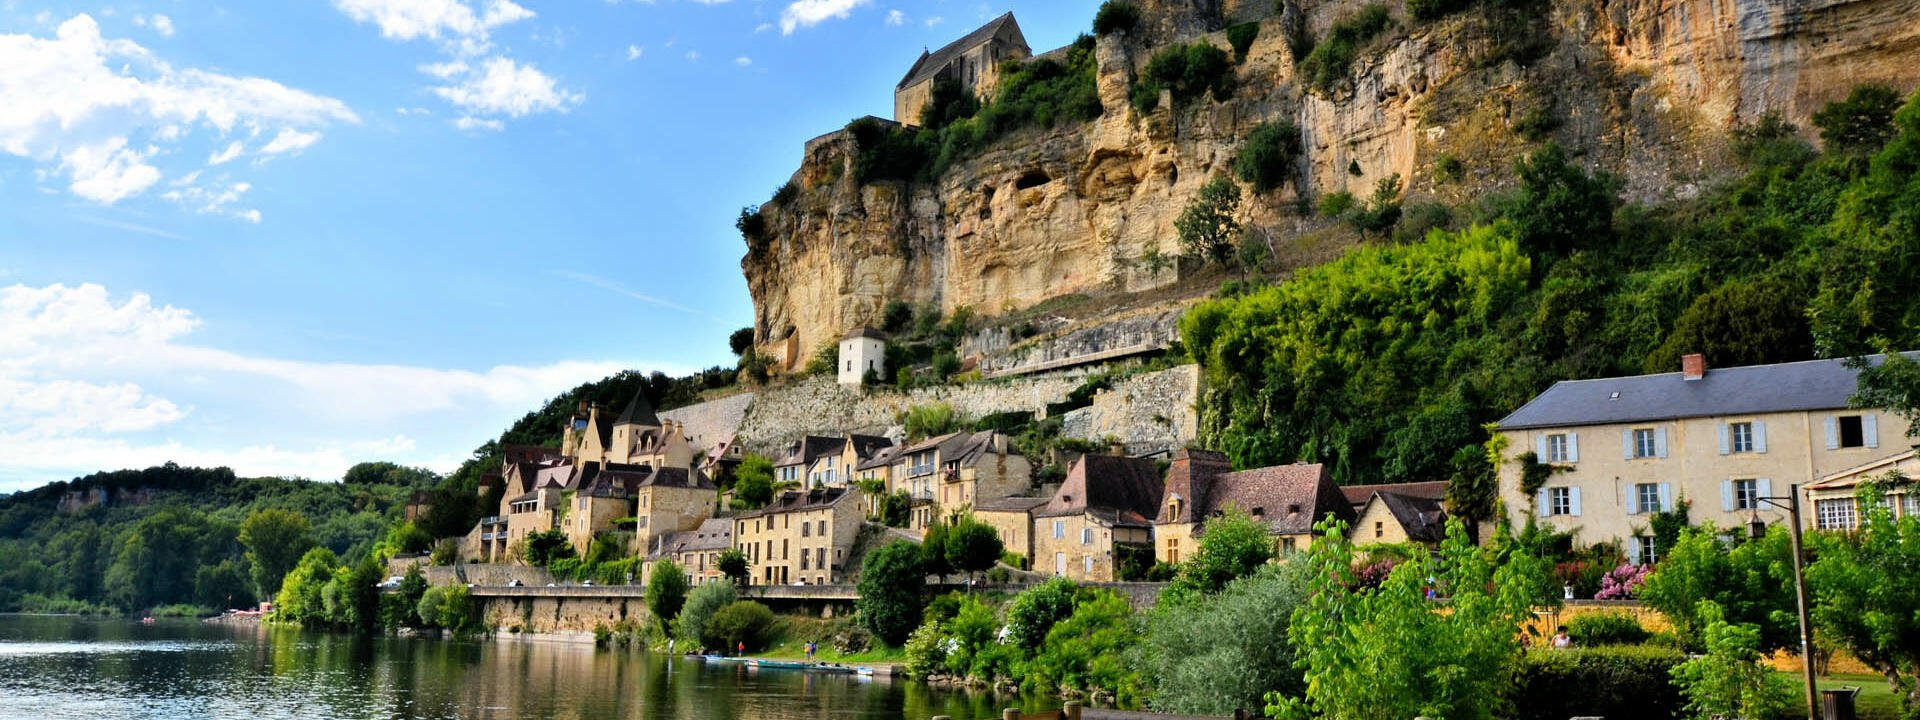 The best kayaking places to discover Dordogne